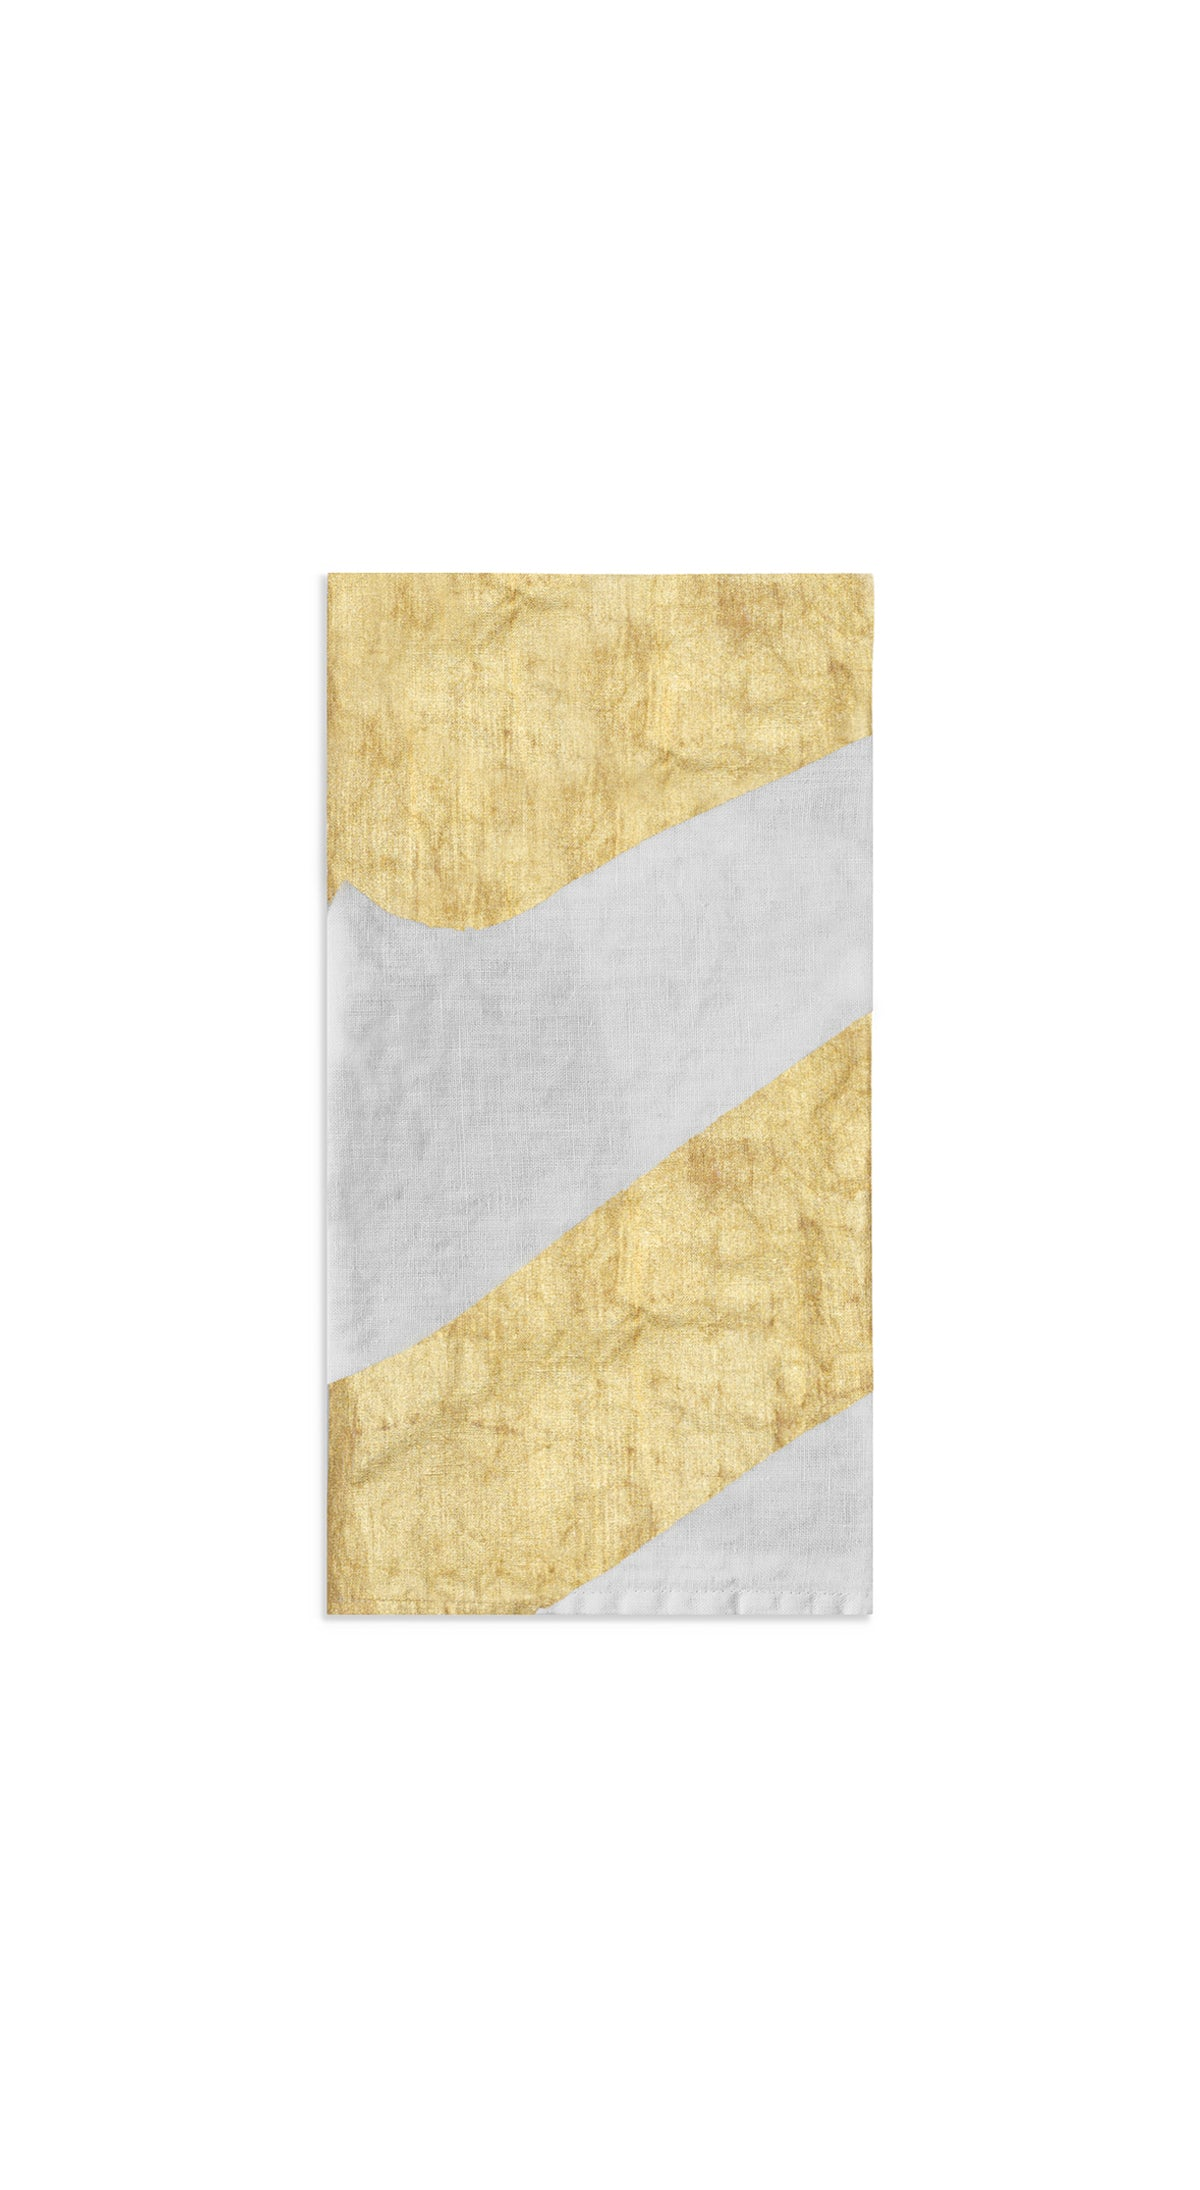 Alphabet Napkin 'V' in Gold